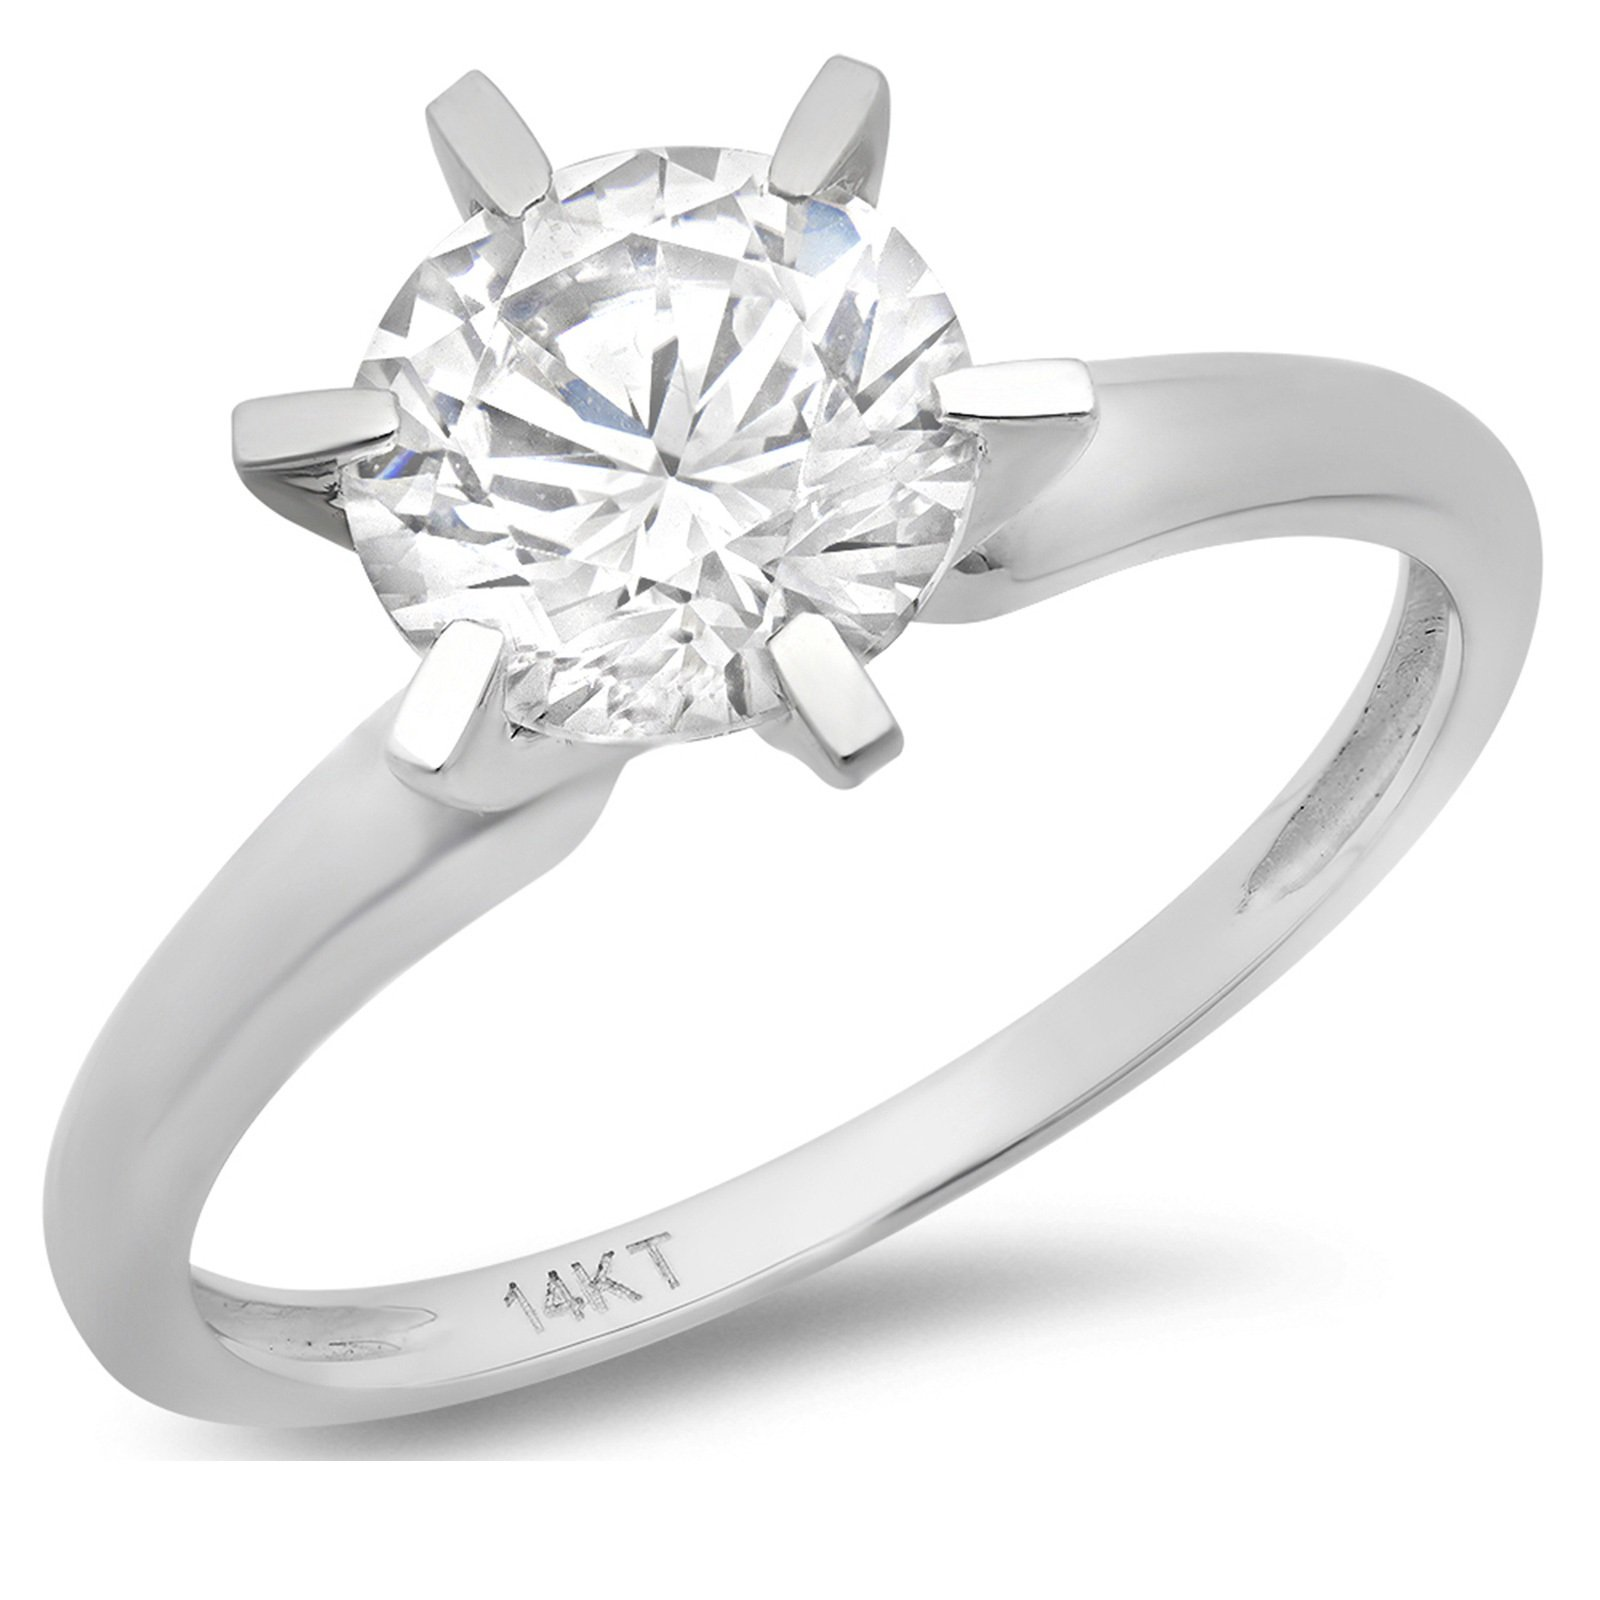 1.0 ct Brilliant Round Cut Solitaire Highest Quality moissanite Engagement Wedding Bridal Promise Anniversary Ring in Solid Real 14k White Gold for Women